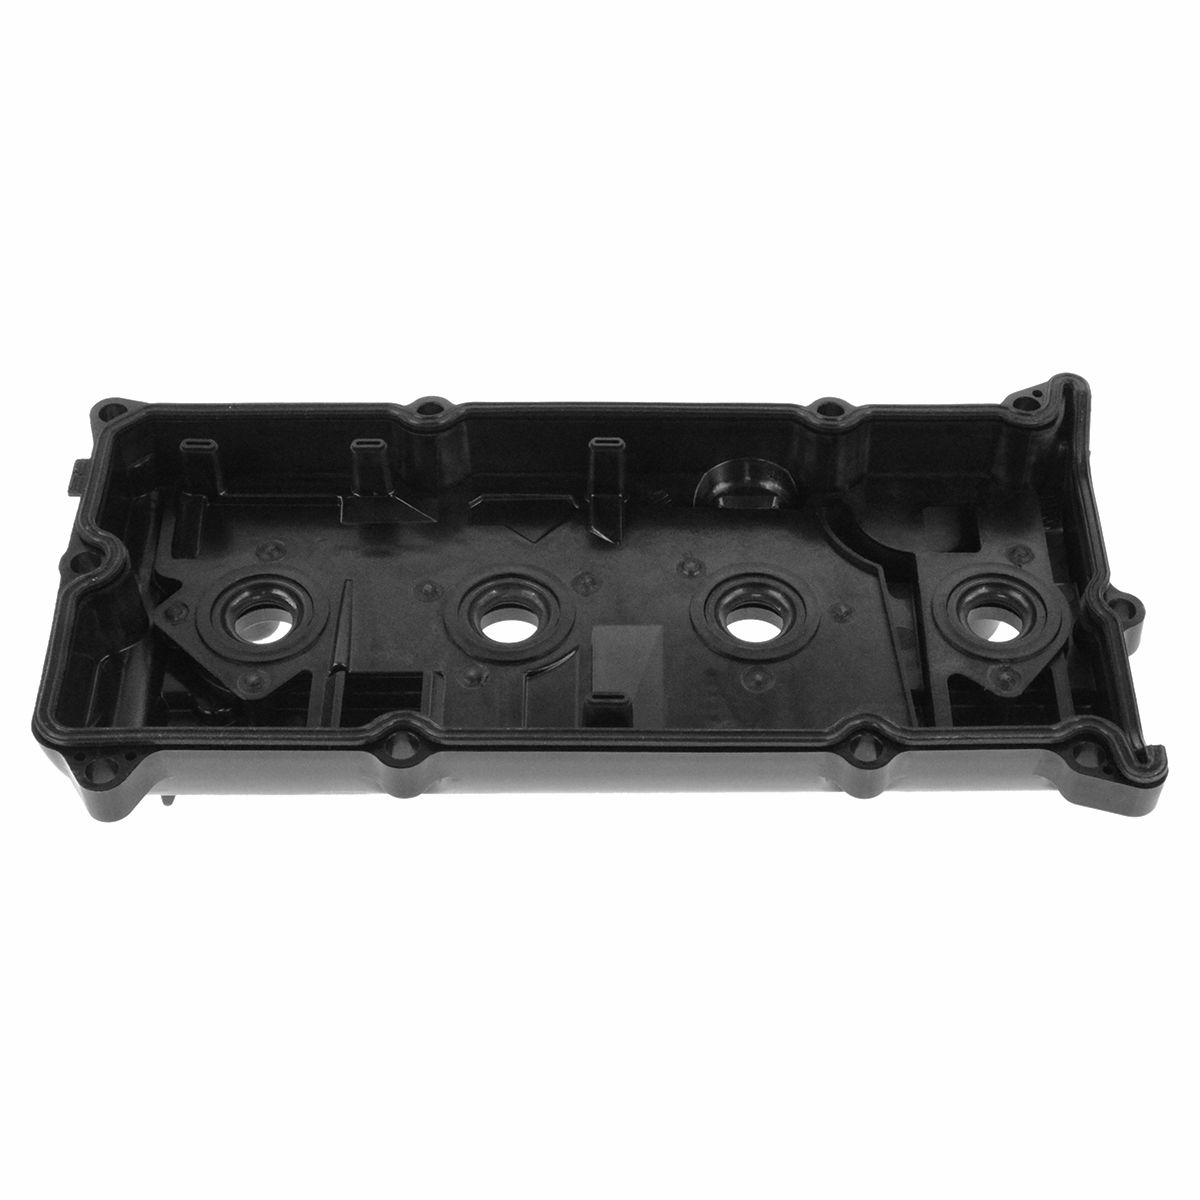 Engine-Valve-Cover-Gaskets-amp-Ignition-Coil-Kit-Set-for-Nissan-Altima-Sentra-New thumbnail 4